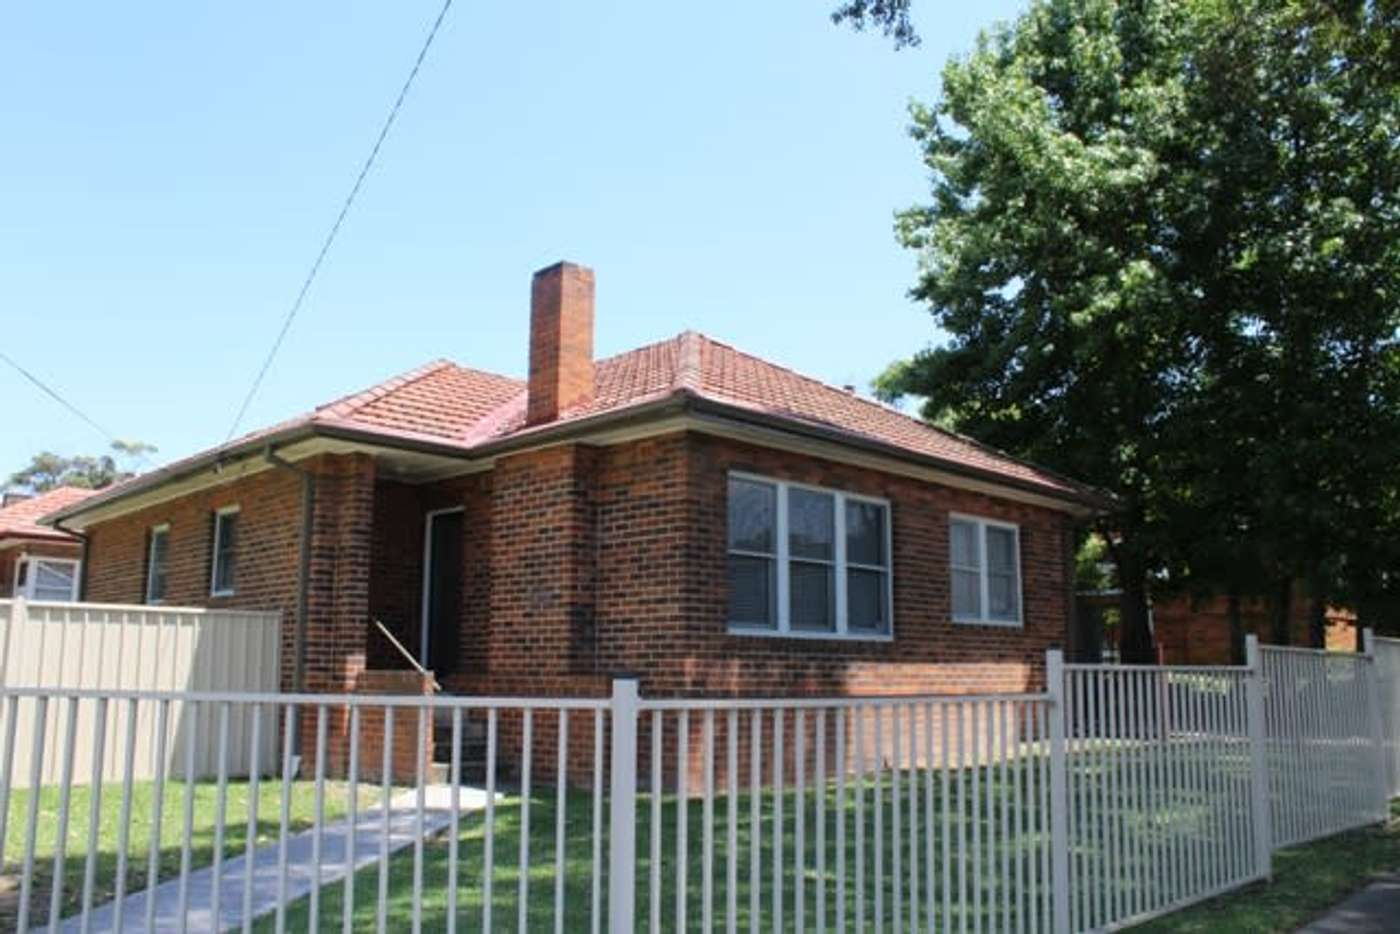 Main view of Homely house listing, 33 Margaret St, Kingsgrove NSW 2208